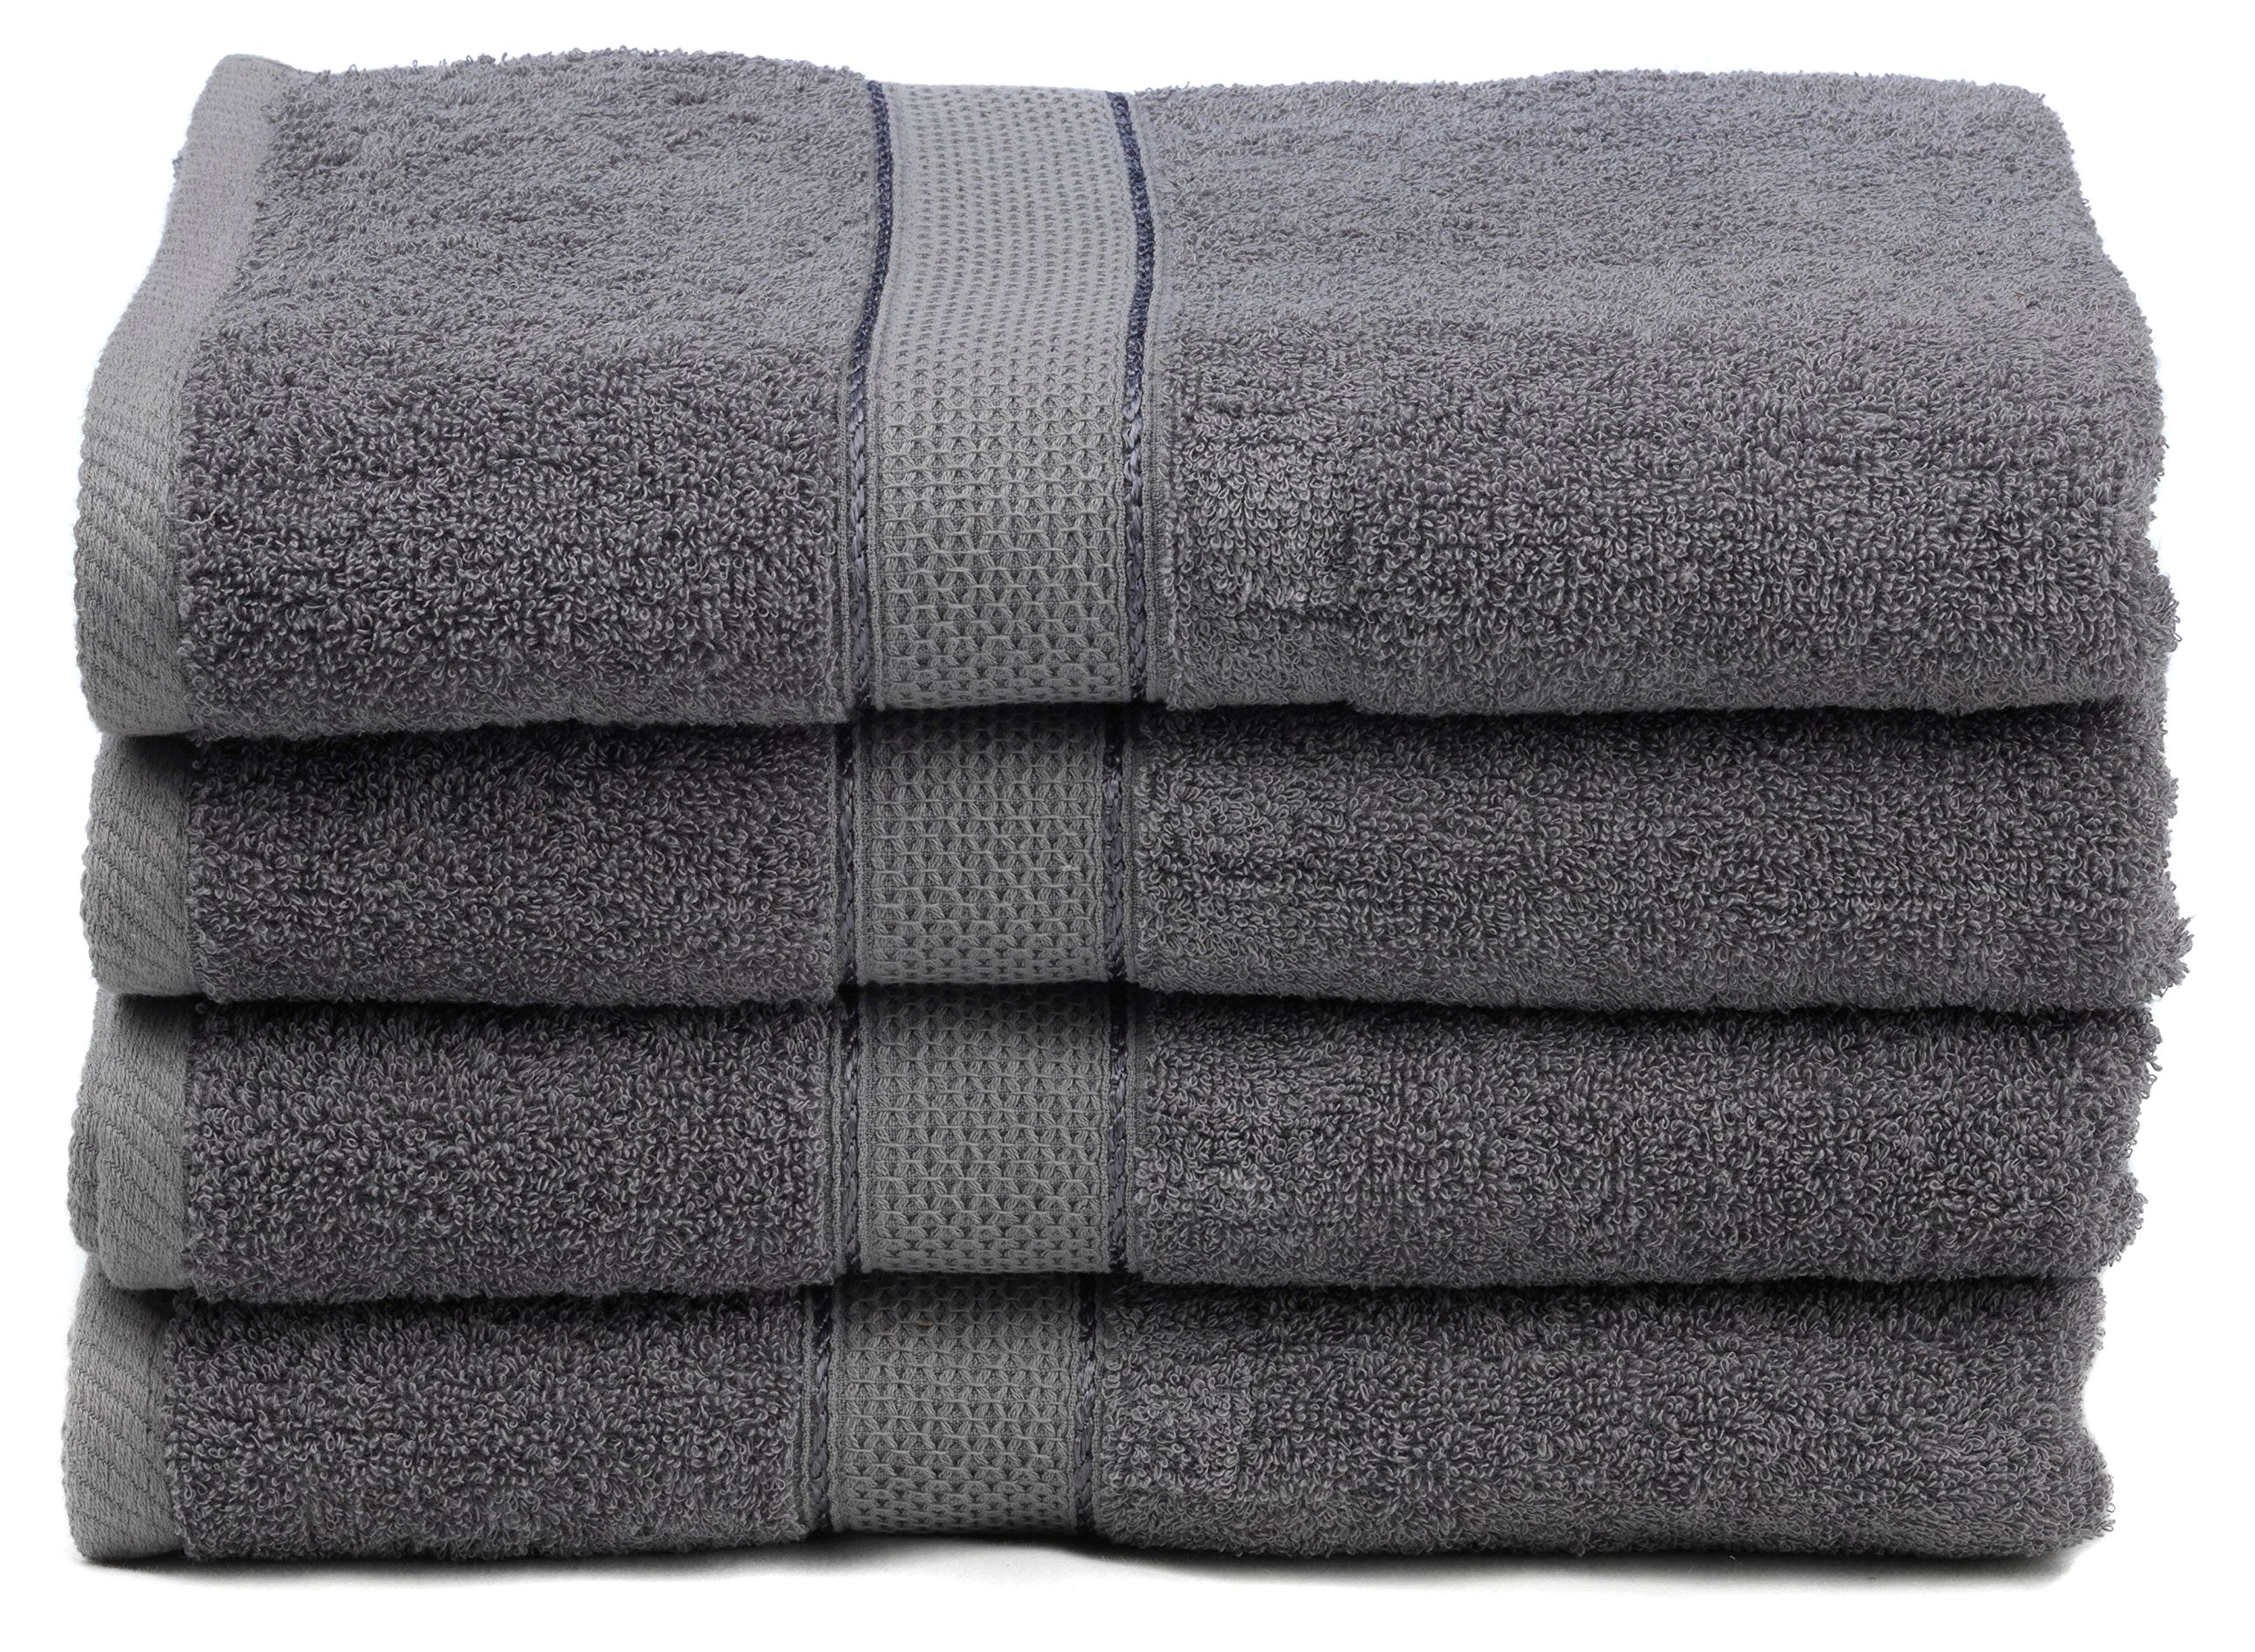 Ariv Collection Premium Bamboo Cotton Bath Towels - Natural, Ultra Absorbent and Eco-Friendly 30'' X 52'' (Grey)